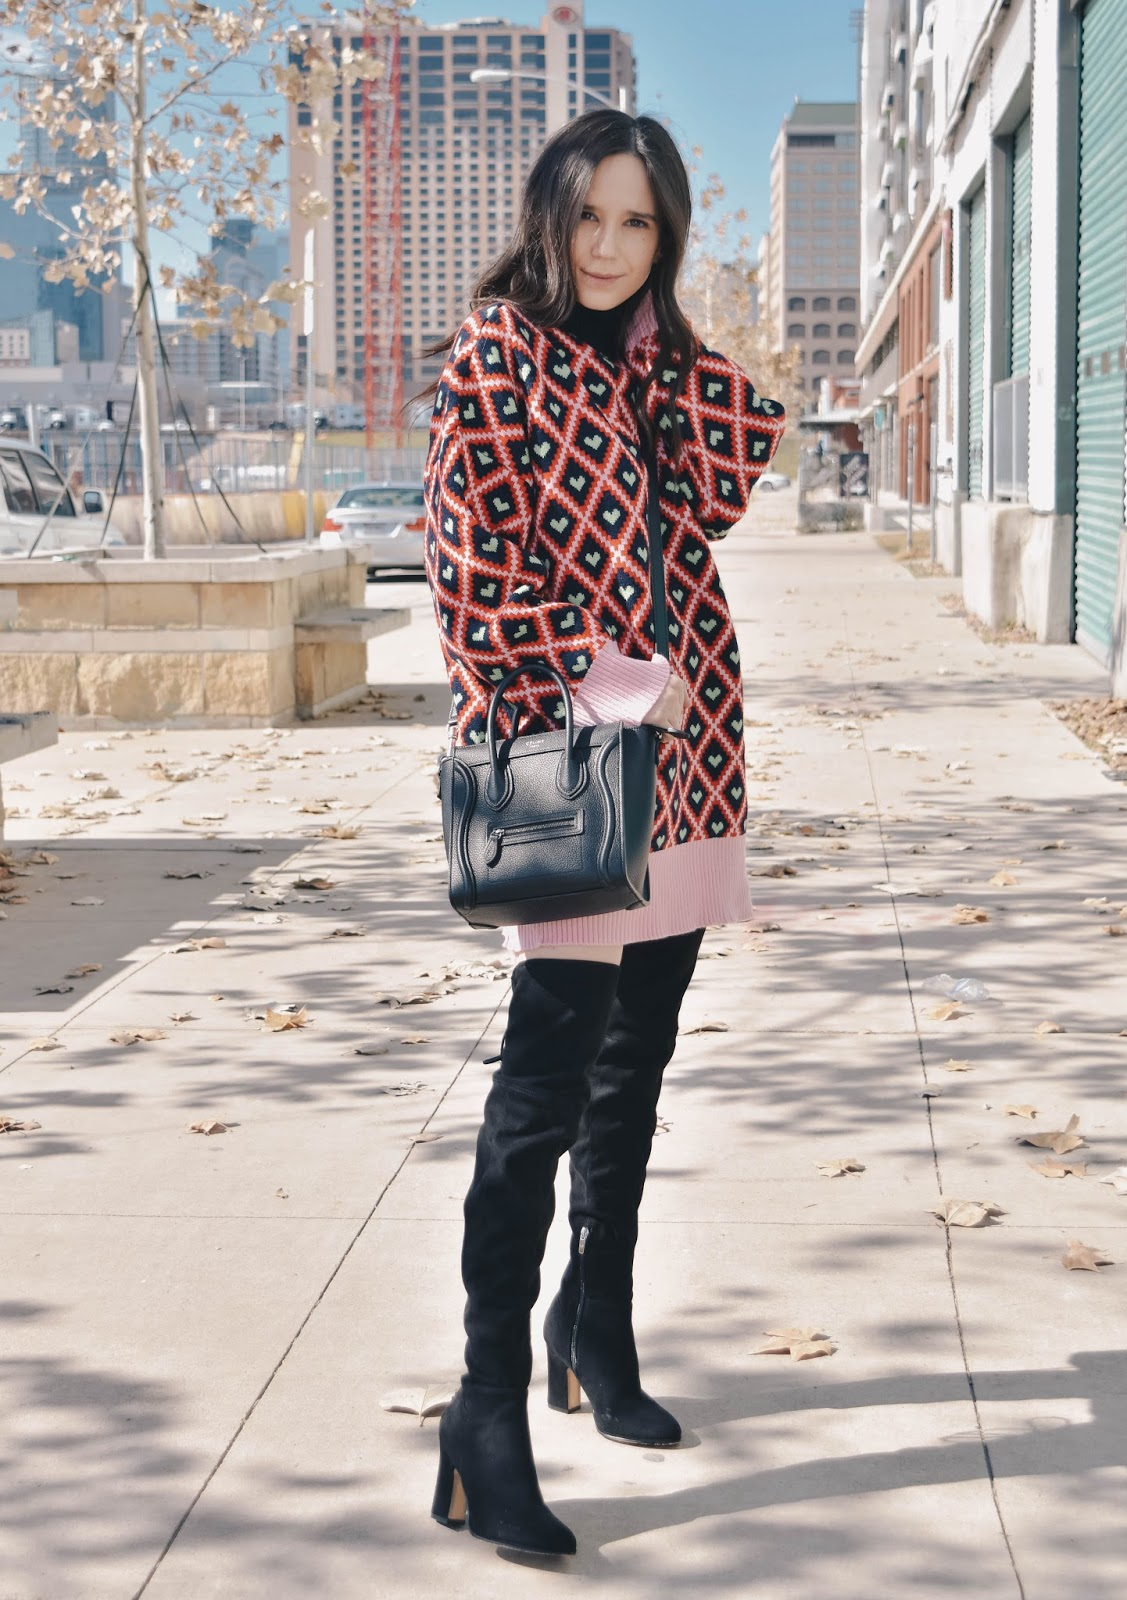 Oversized Sweater Dress Over The Knee Boots Simply Ana Fashion